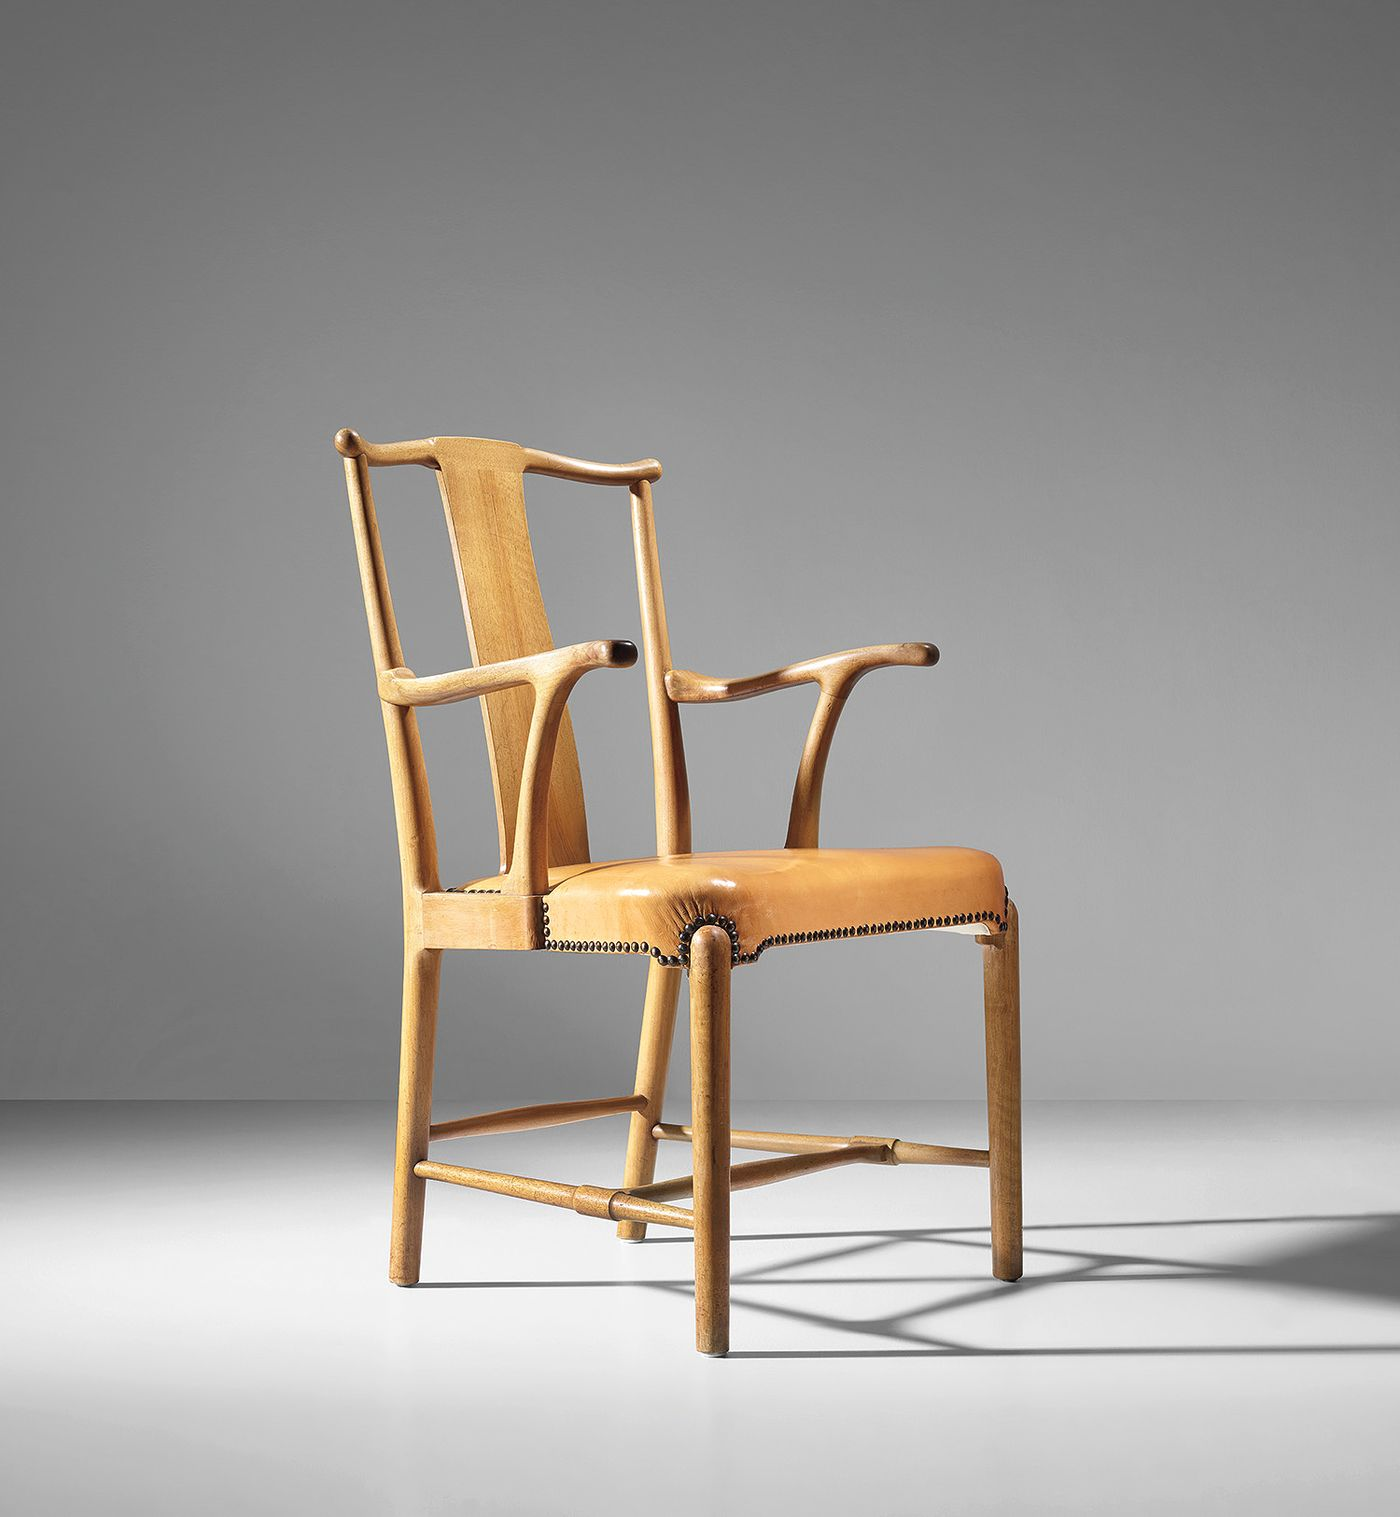 Reinterpreted from traditional Chinese models, Wegner's meticulous armchair design incorporates an integrated construction to achieve simplicity of form.